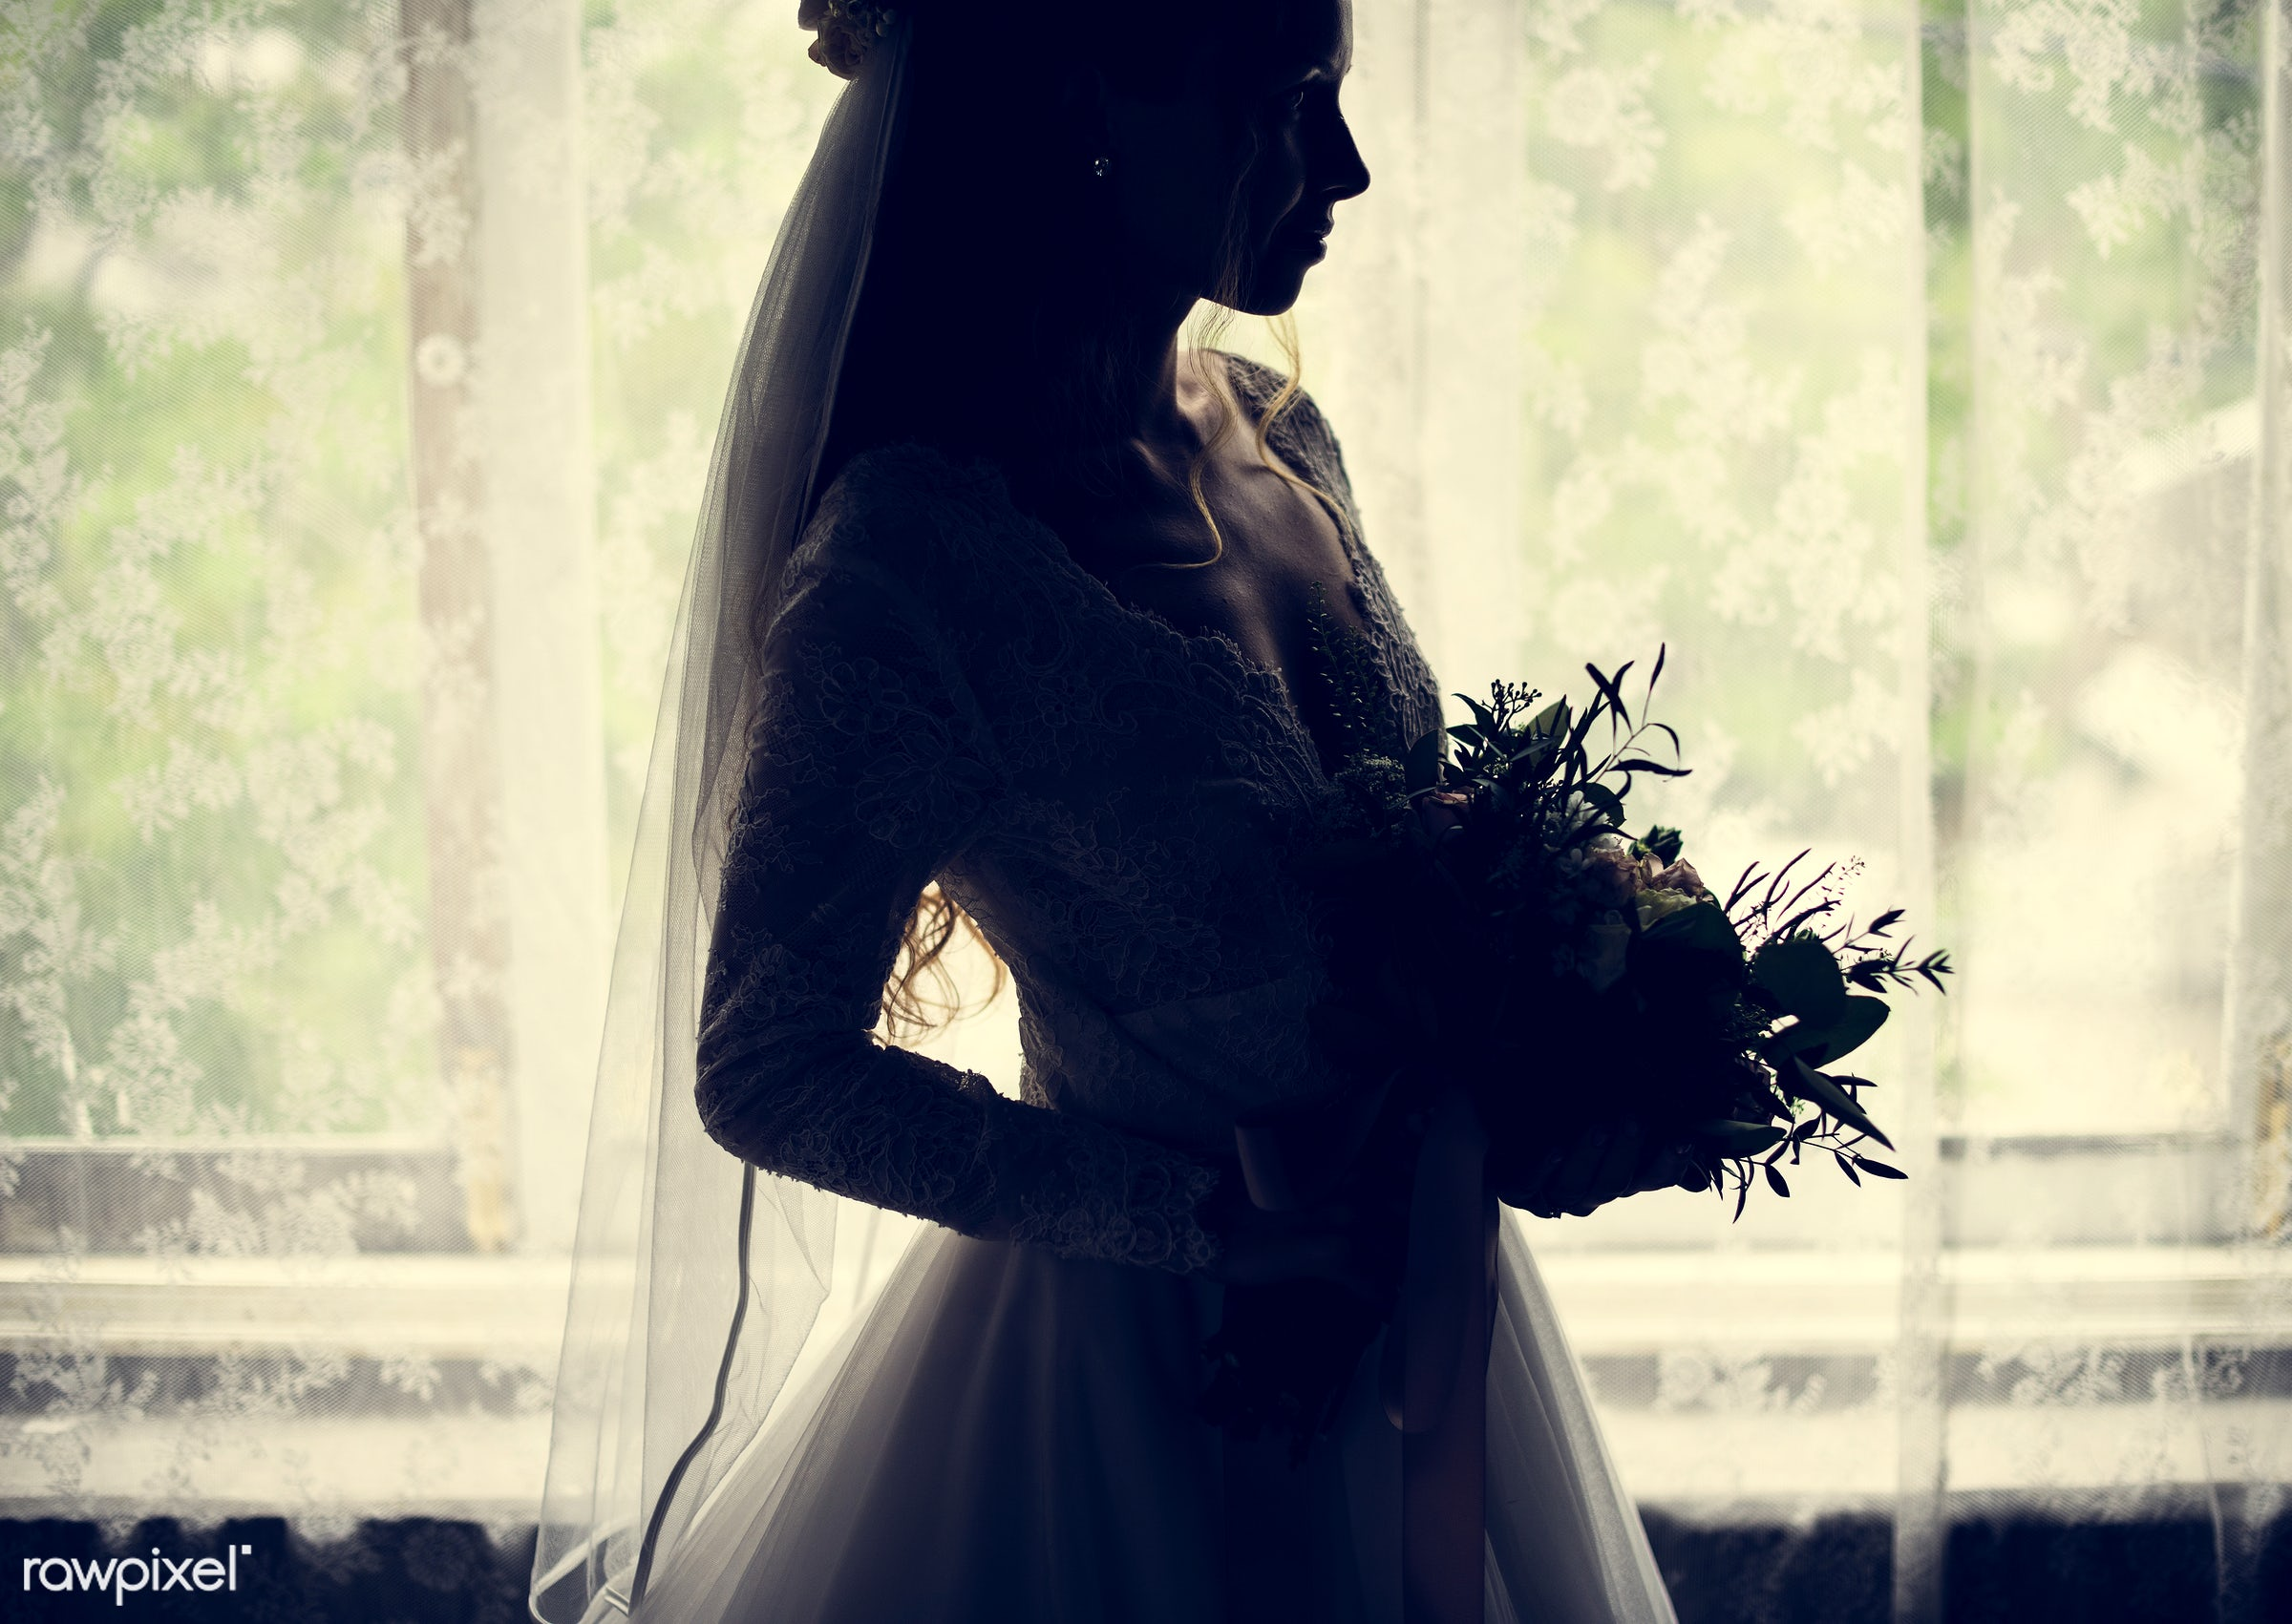 bouquet, person, holding, bonding, people, love, style, event, woman, back lit, care, bride, flower, marry, abstract,...